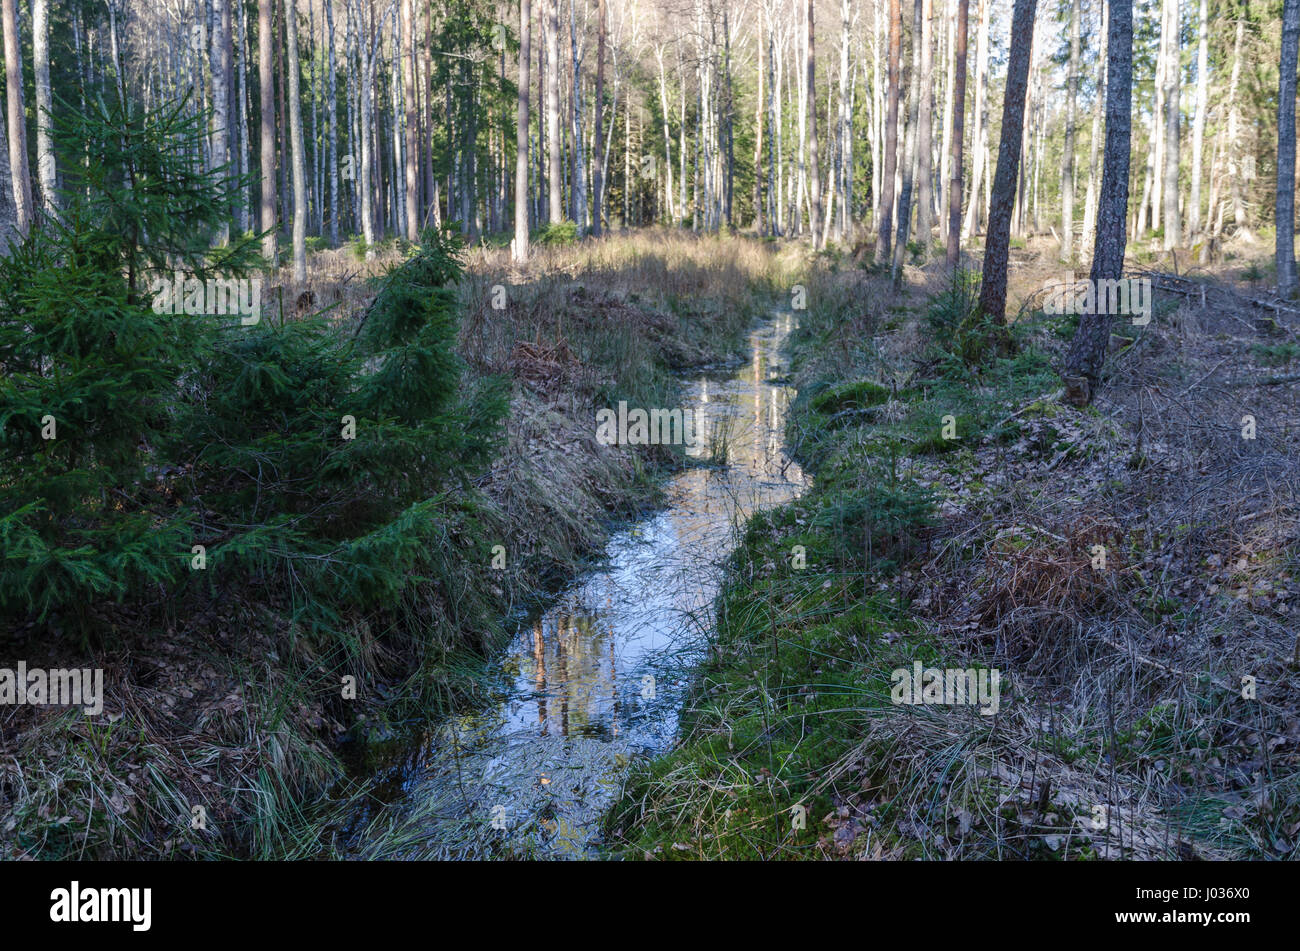 Draining by an open ditch in a forest - Stock Image